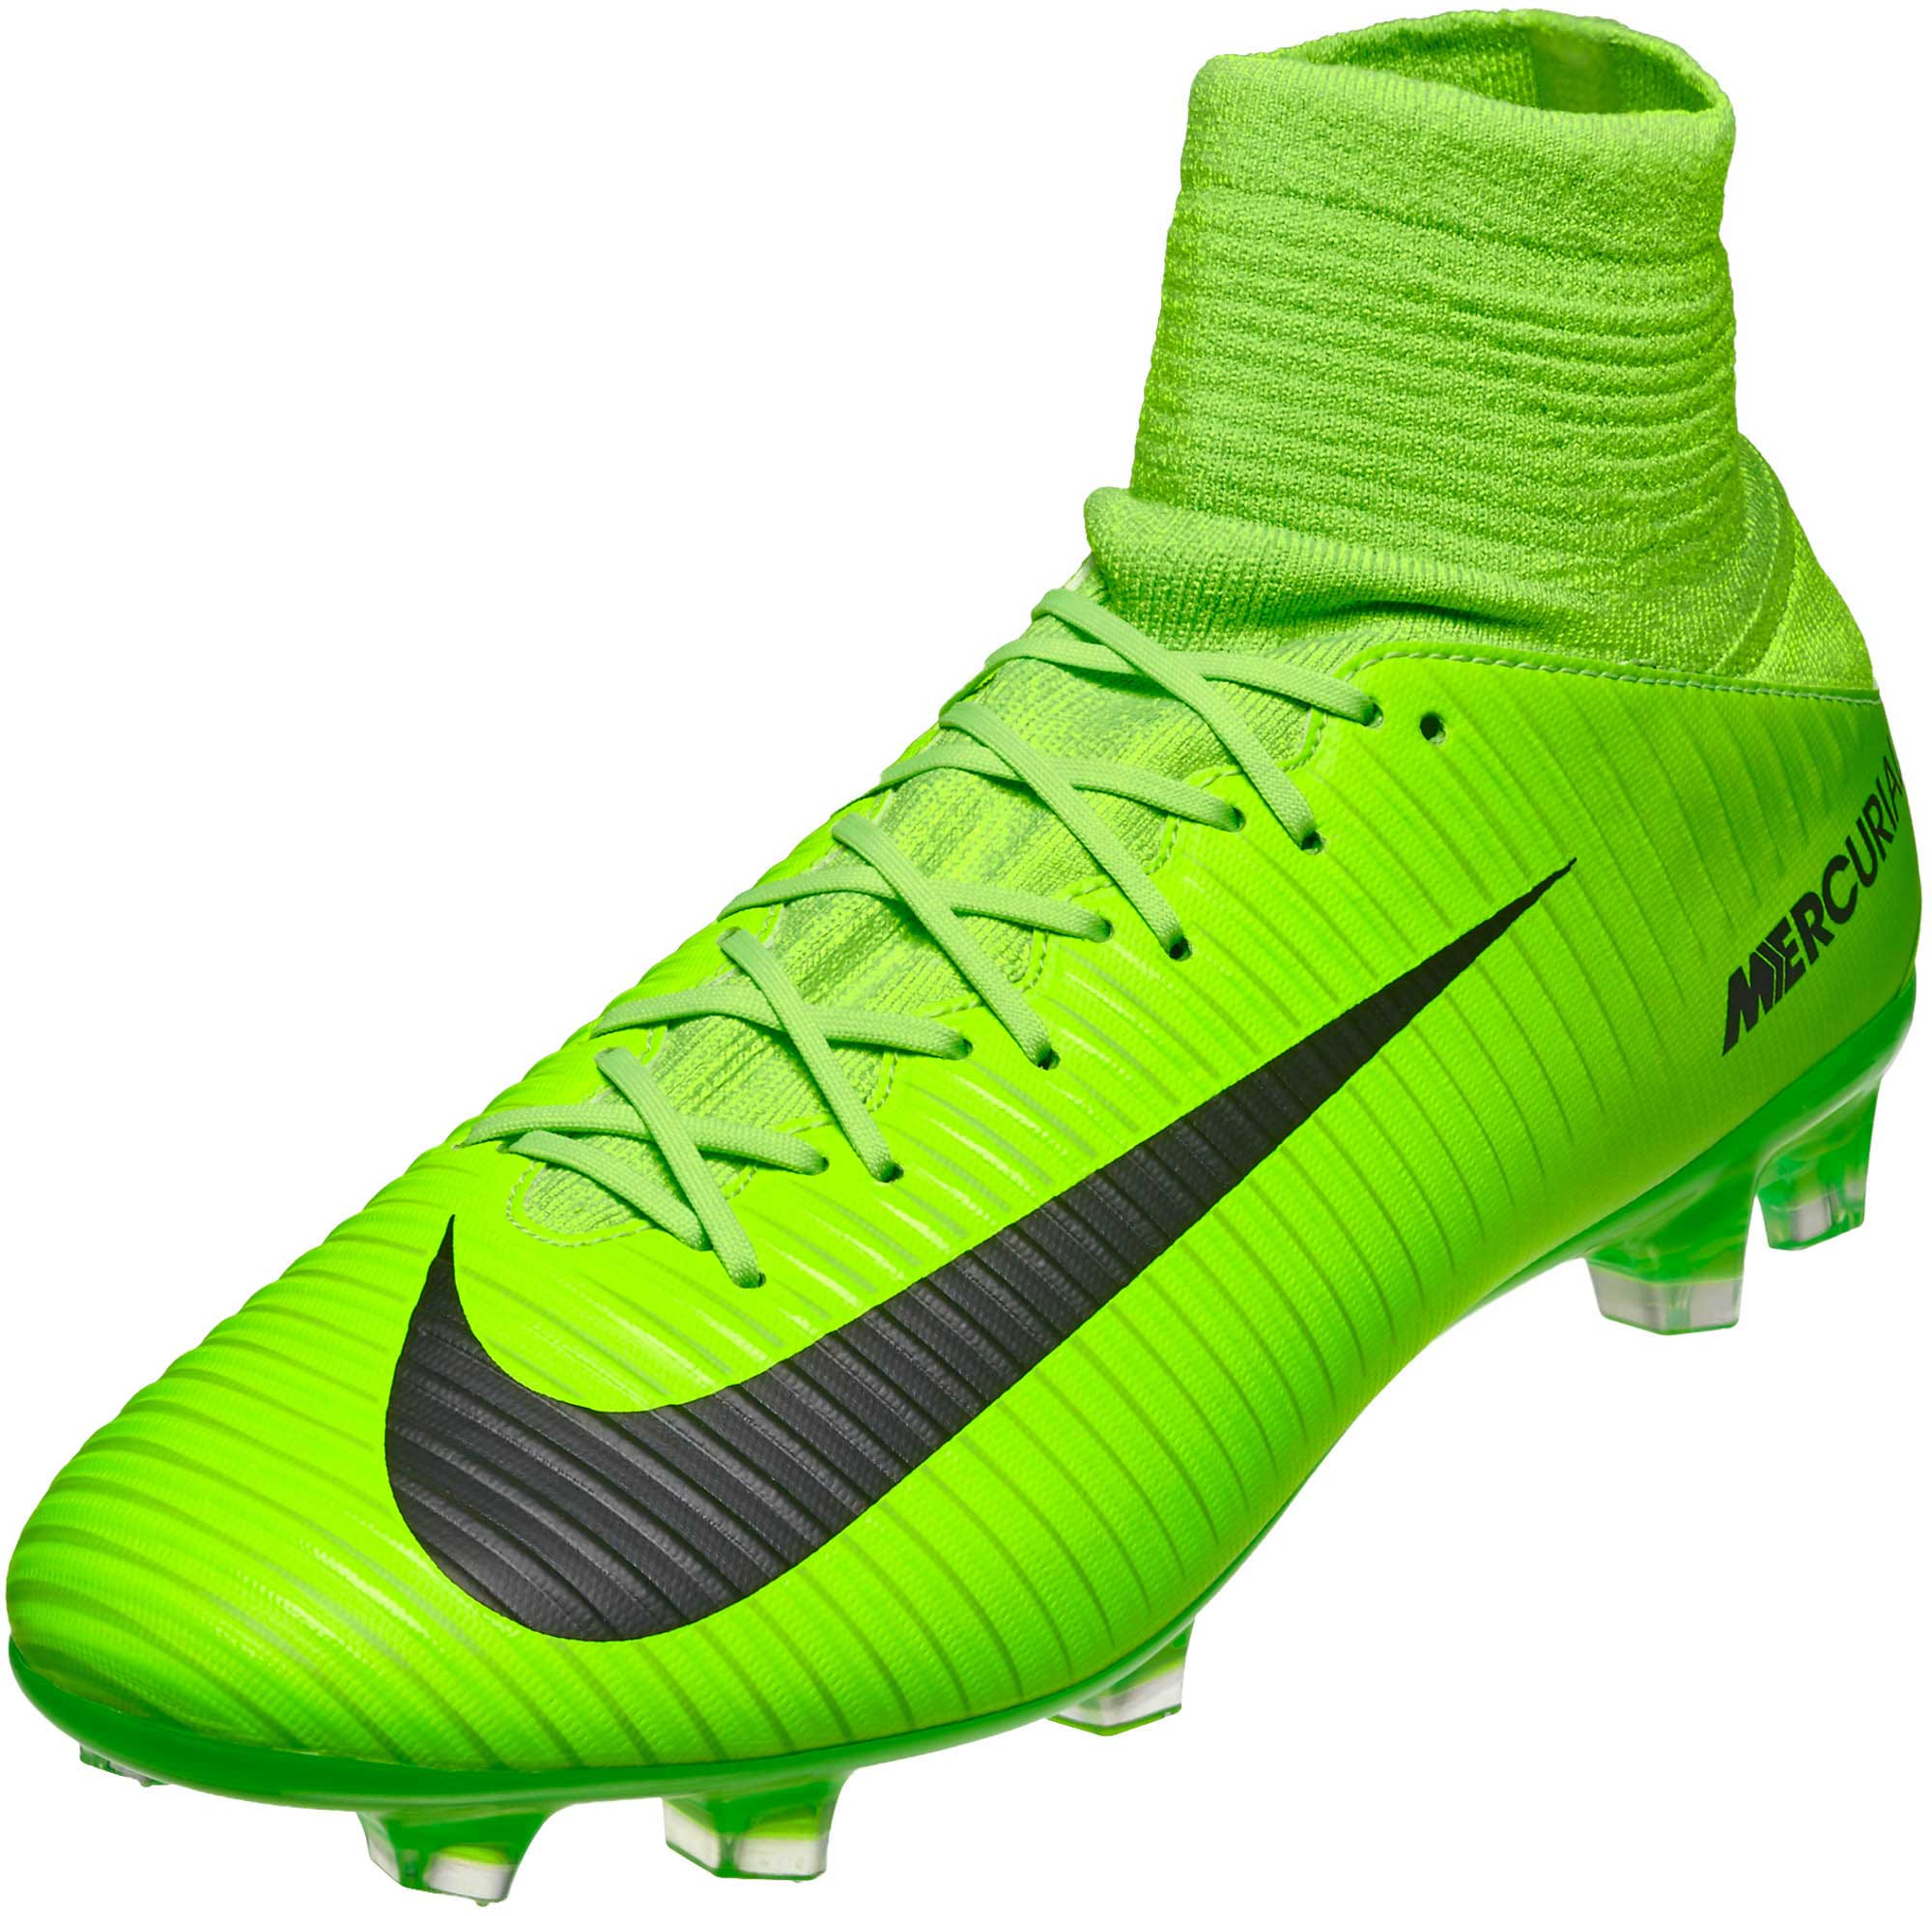 timeless design 1f091 4f710 Nike Mercurial Veloce III DF FG – Electric GreenFlash Lime